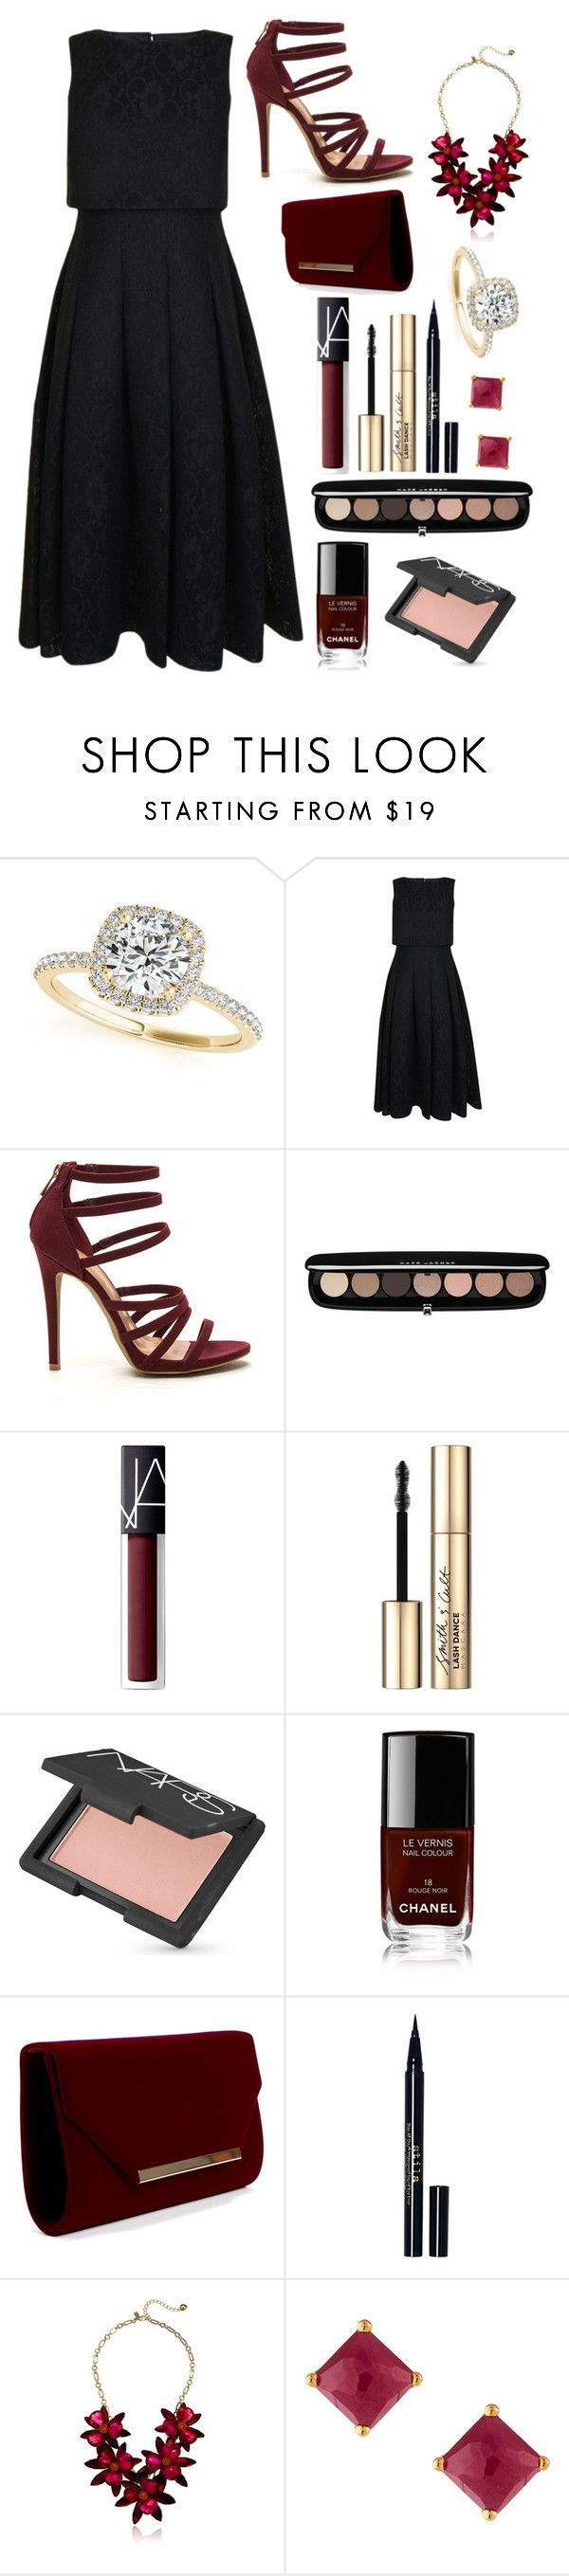 """""""Engagement"""" by lightbody-joanna on Polyvore featuring Allurez, Ted Baker, Marc Jacobs, NARS Cosmetics, Smith & Cult, Chanel, Stila, Kate Spade and Ippolita"""